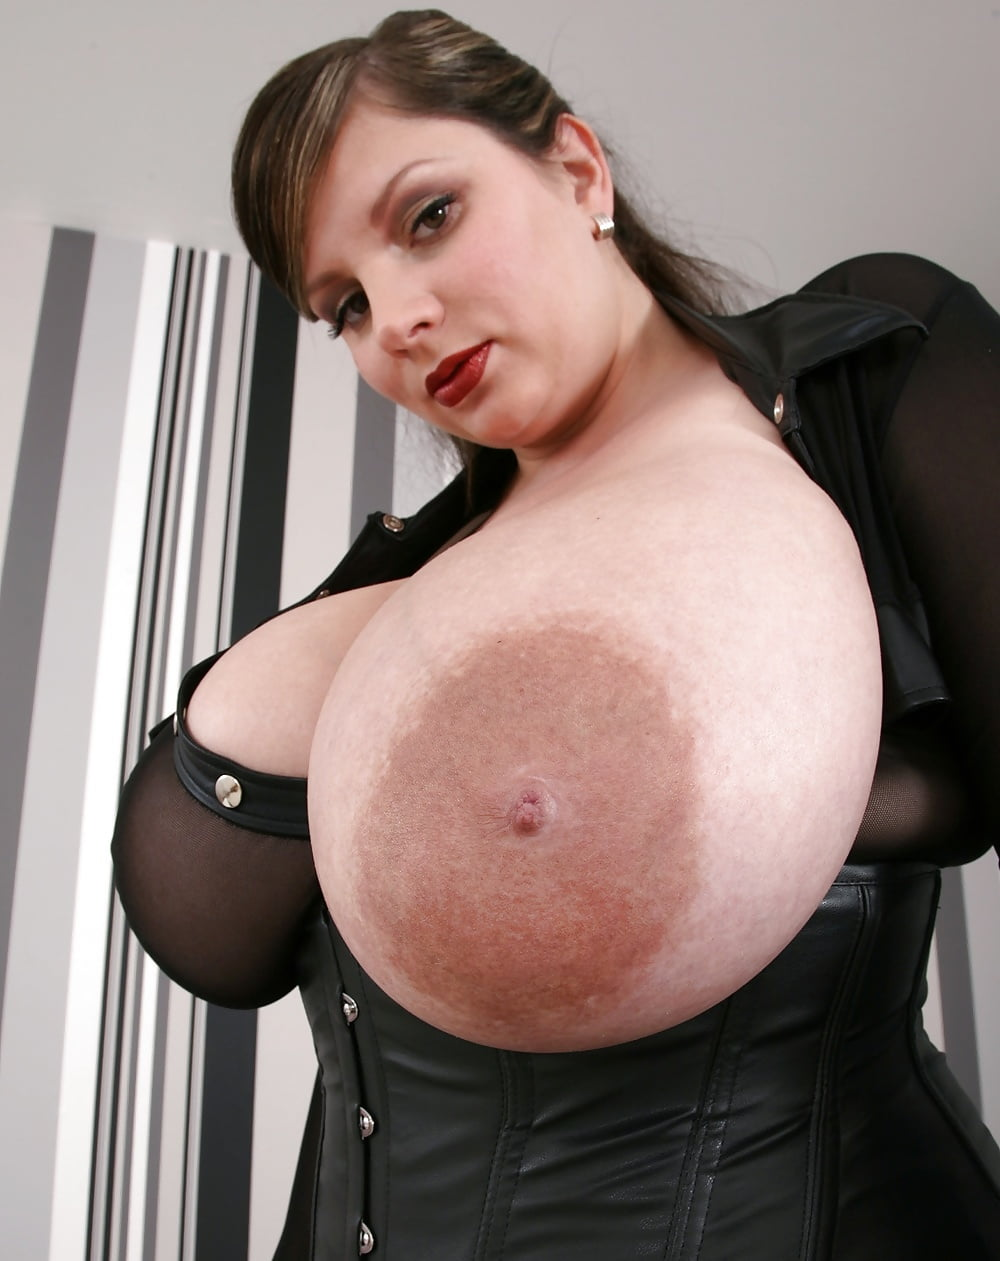 Enormous fat breasts